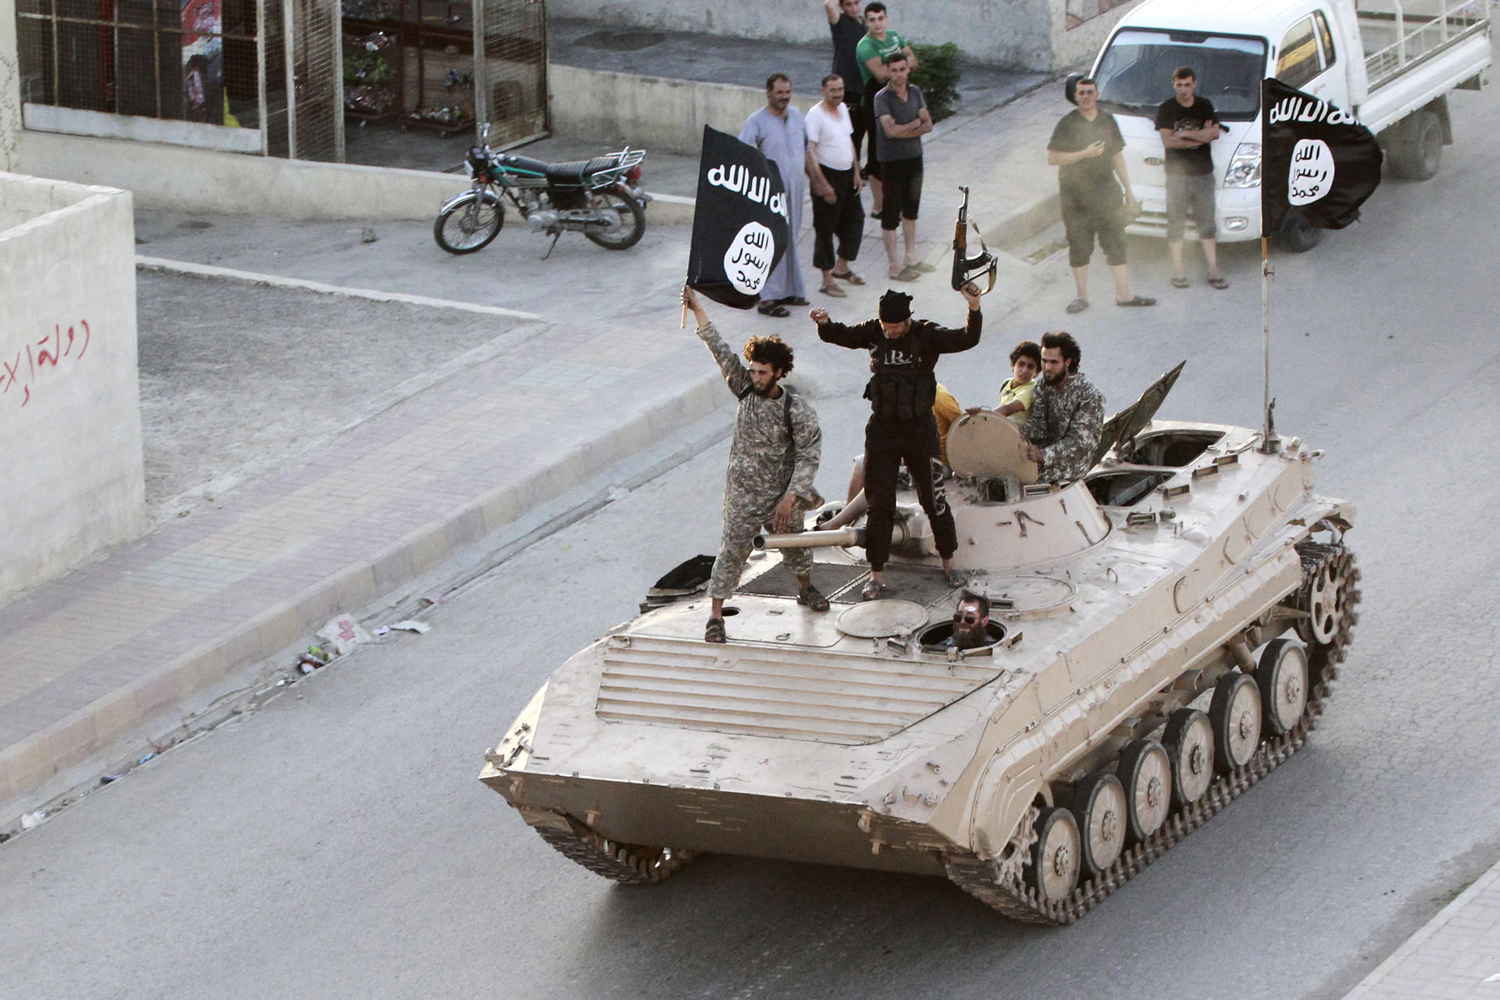 Militant Islamist fighters take part in a military parade along the streets of northern Raqqa province in Syria, June 30, 2014.